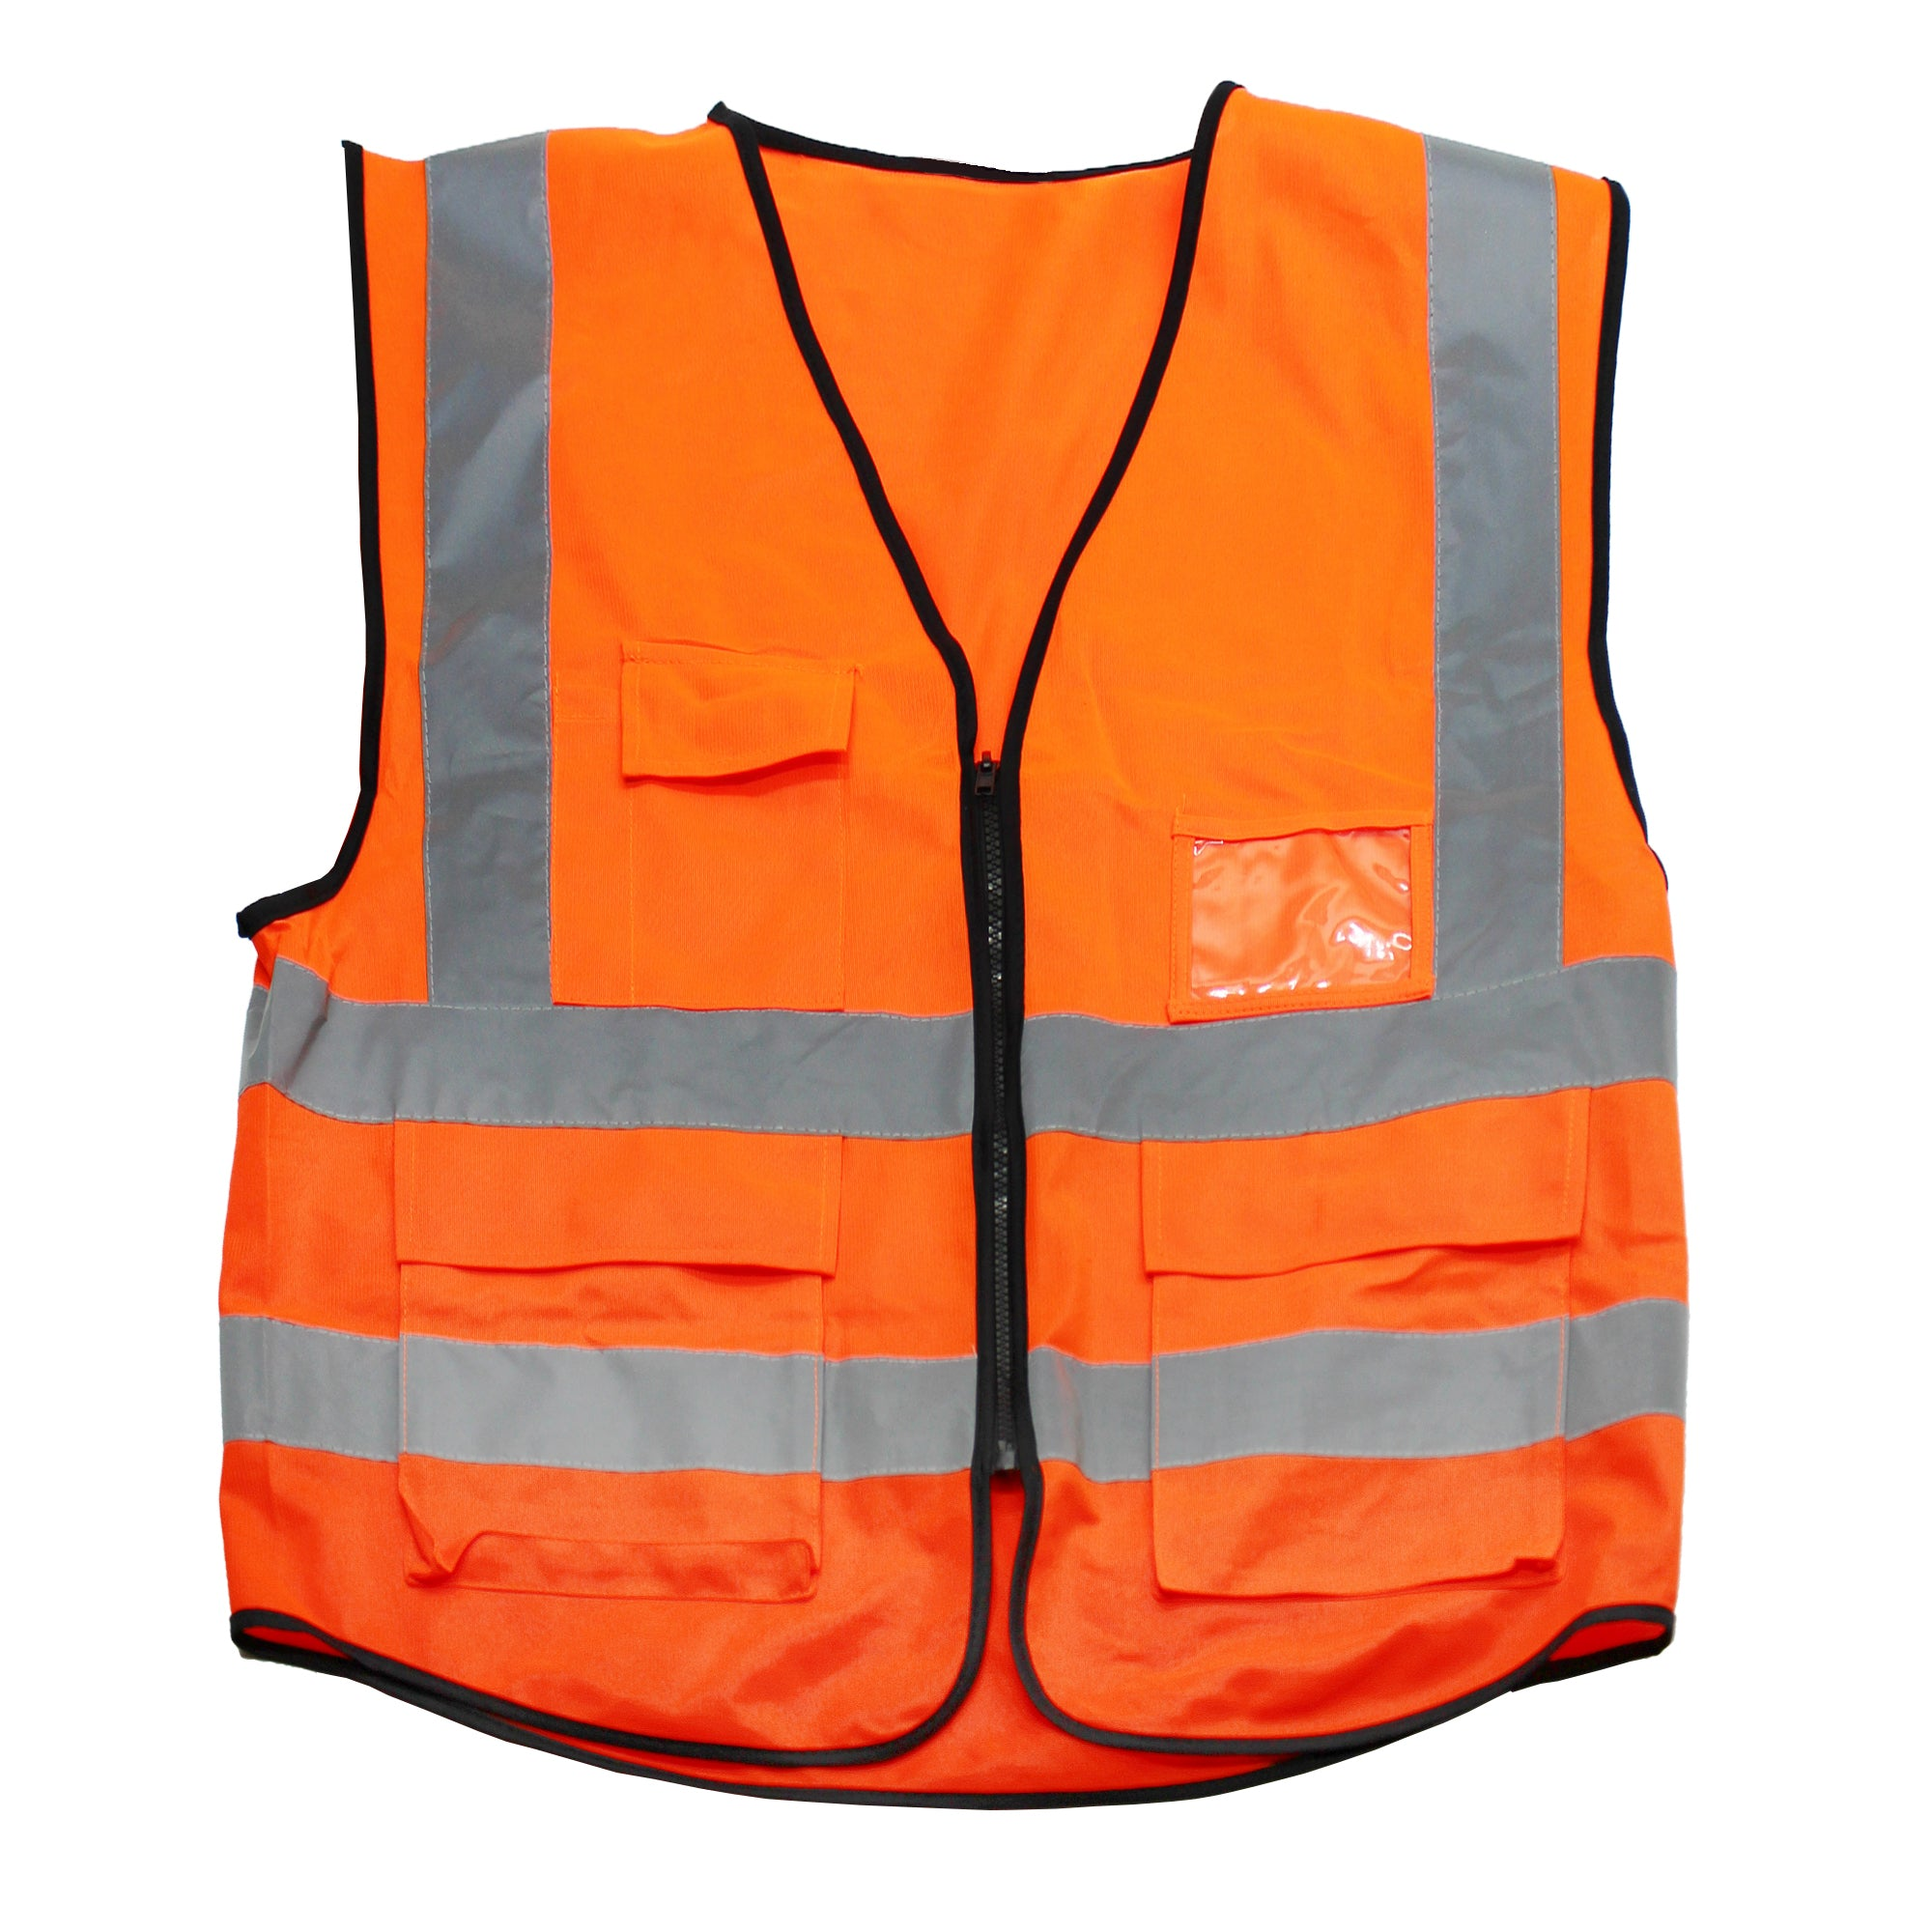 Orange safety vest with reflective strips and front pockets